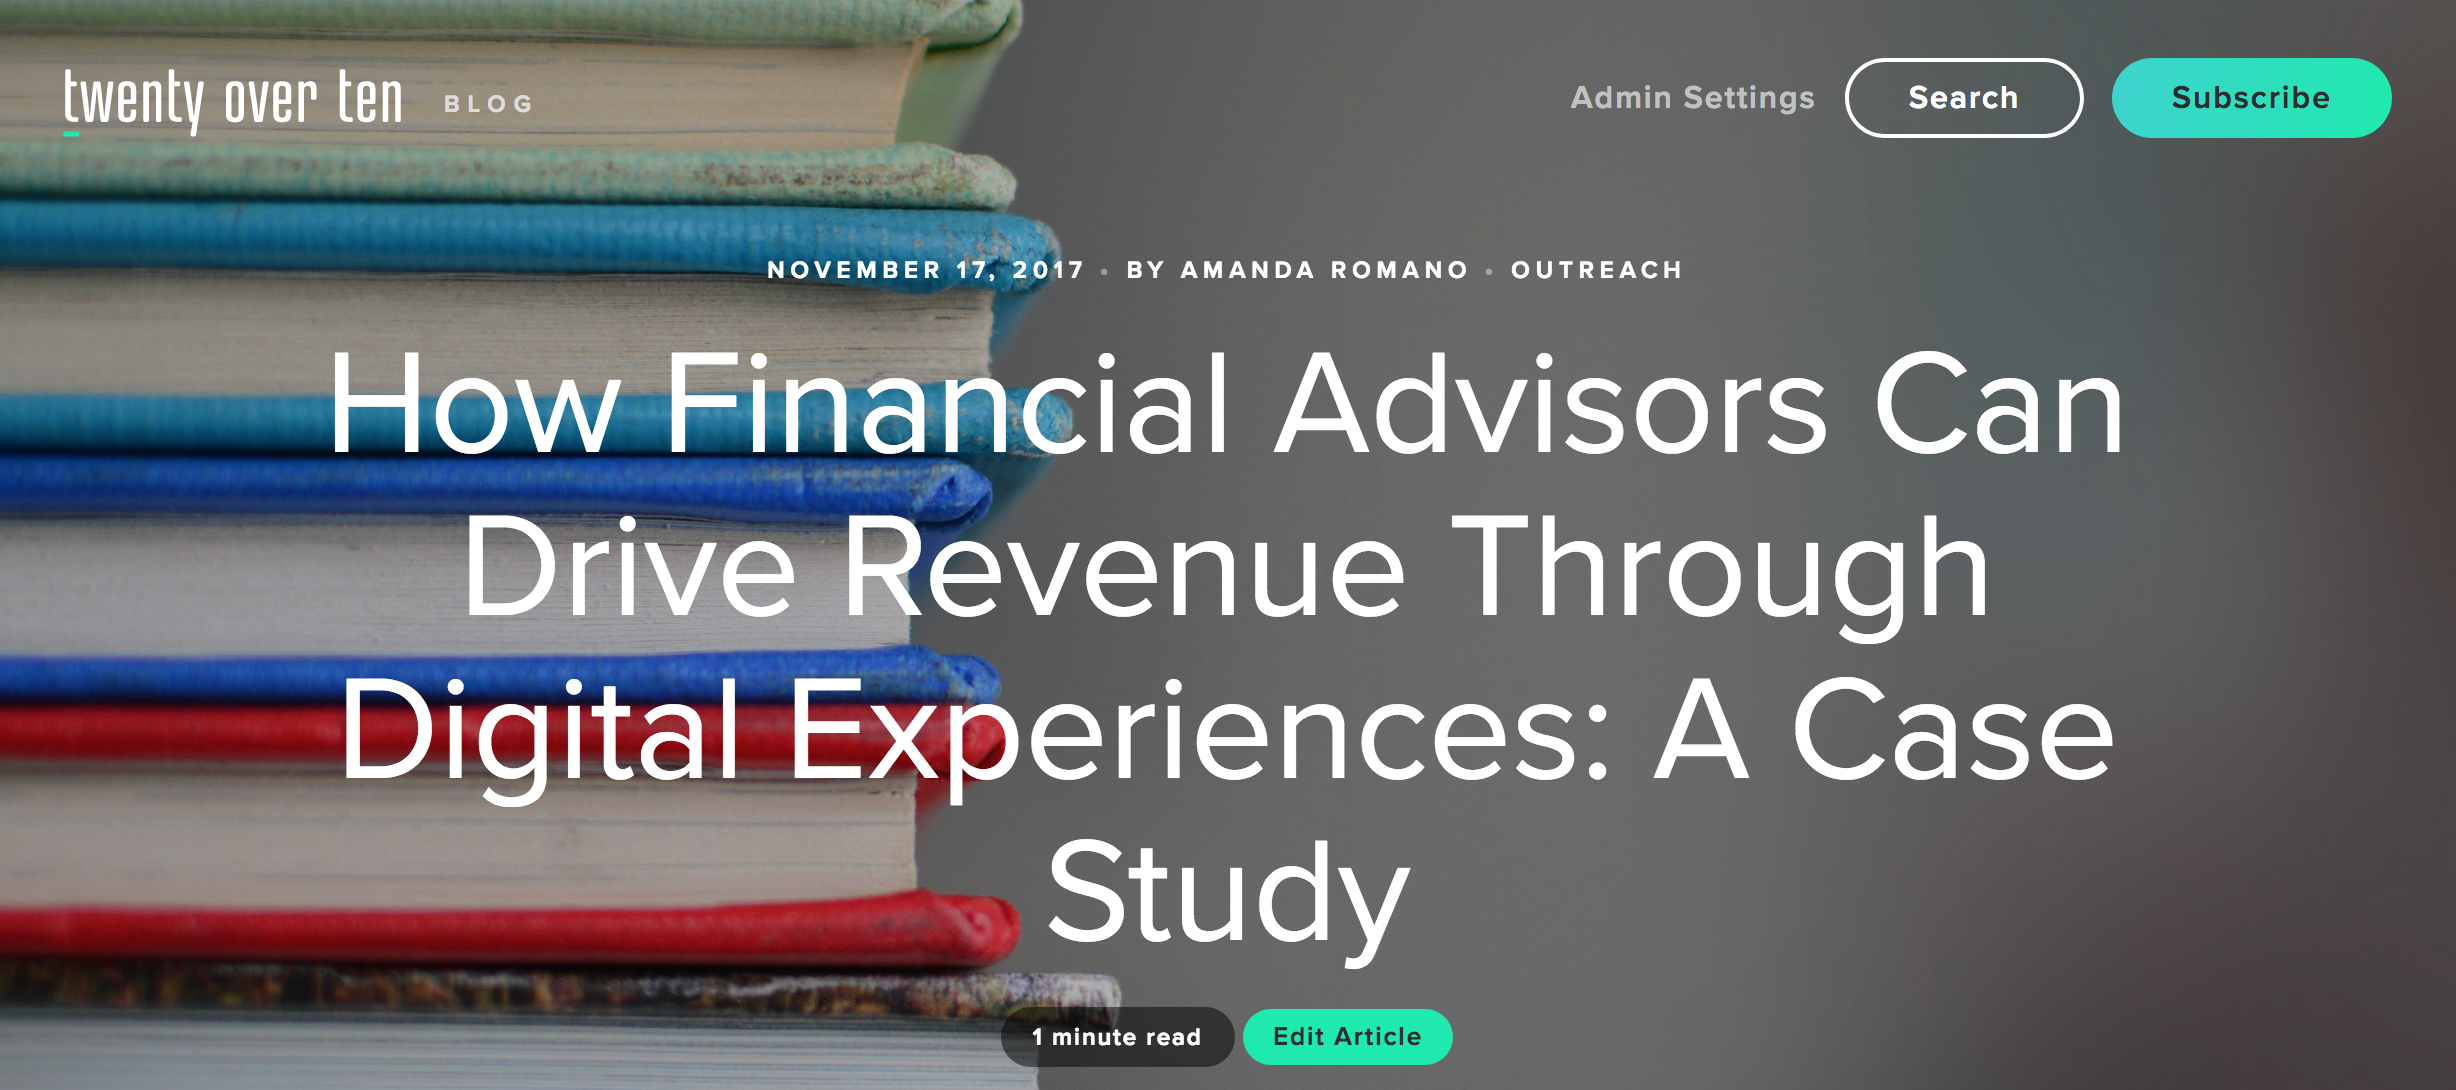 how financial advisors can drive revenue: a case study